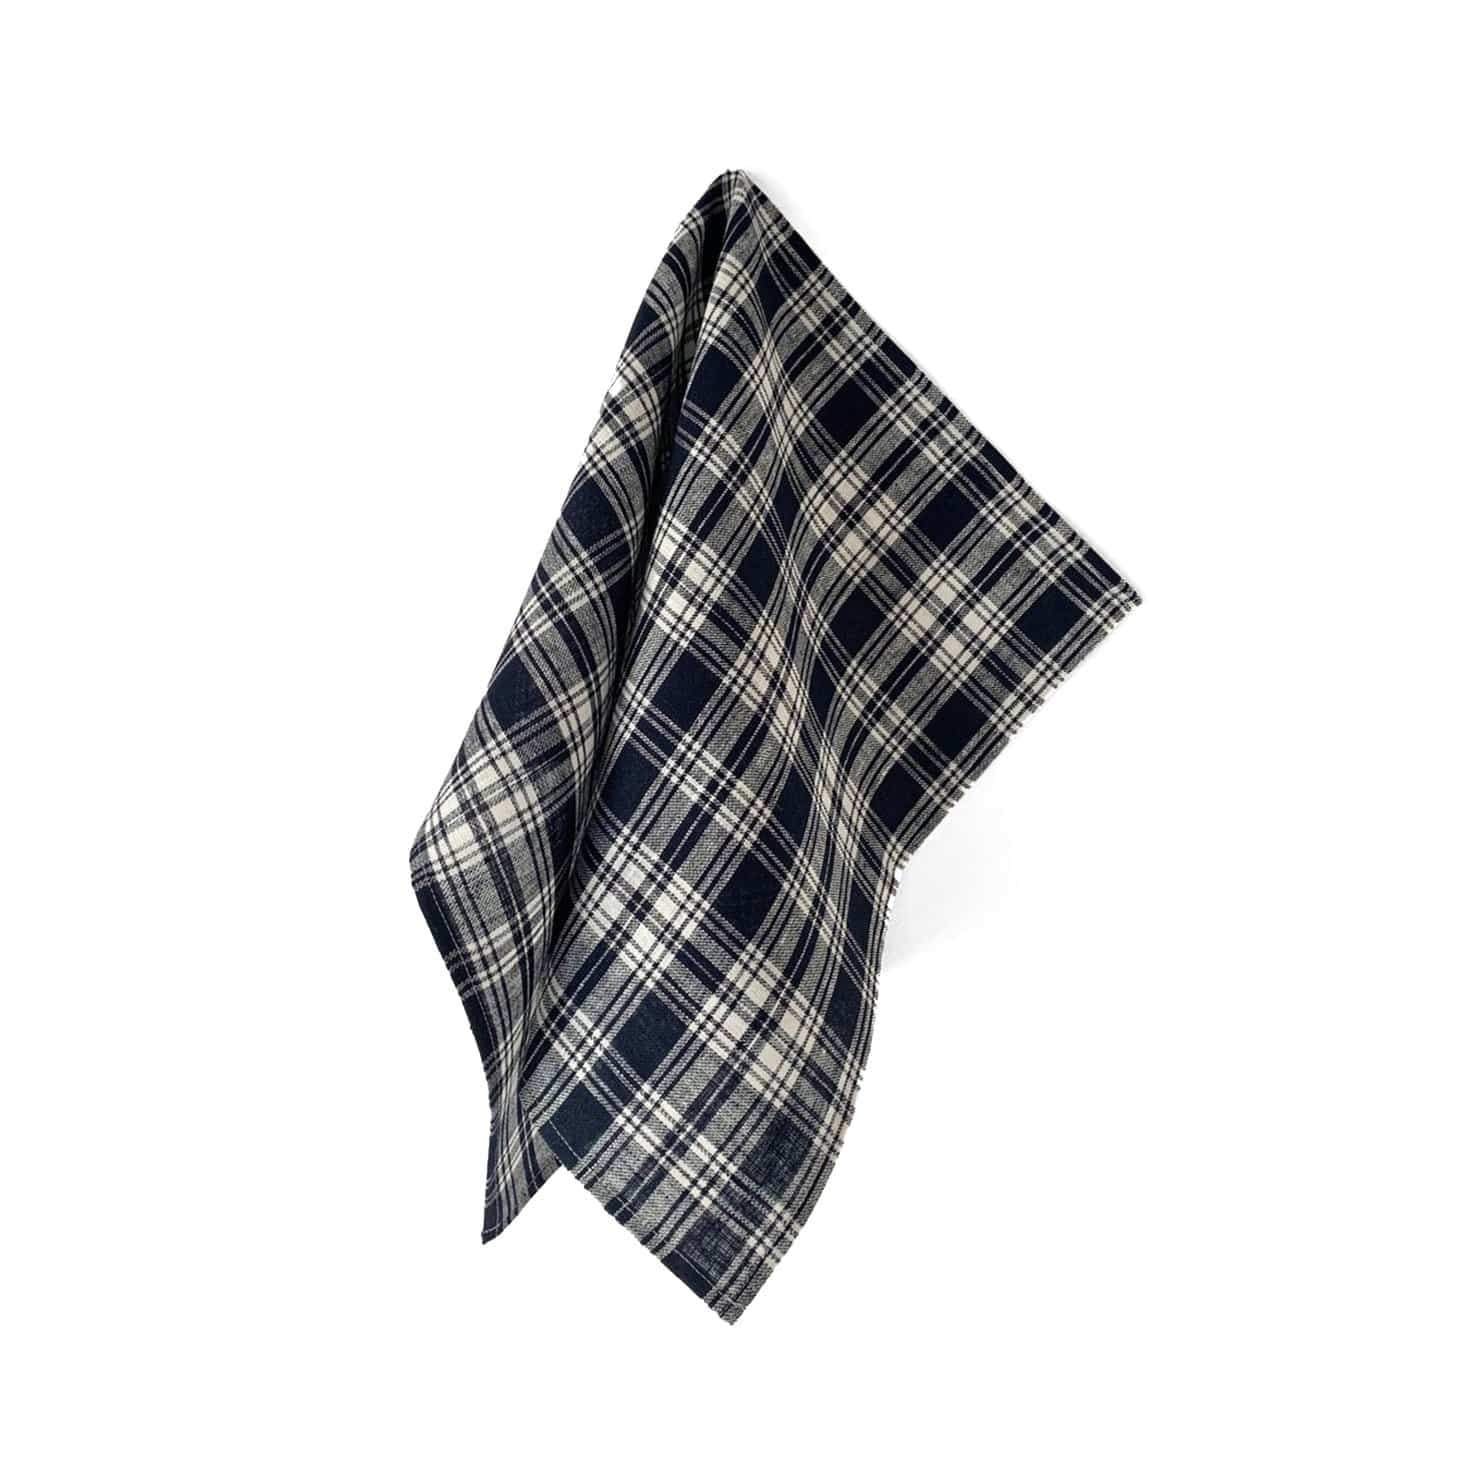 Fog Linen Work Tea Towel - Navy Plaid